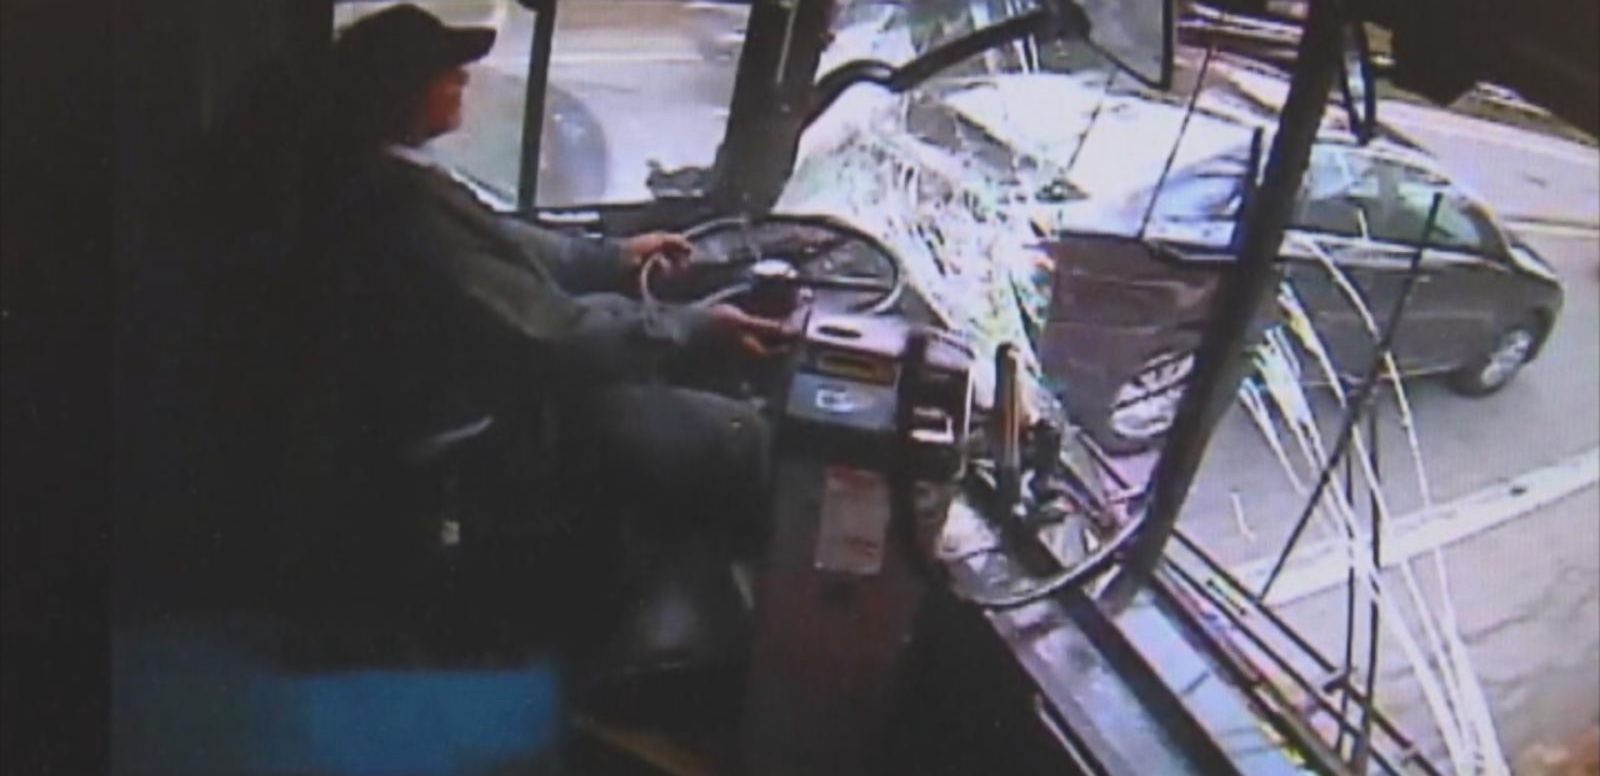 VIDEO: Caught on Camera: Bus Driver Falls Asleep Behind the Wheel